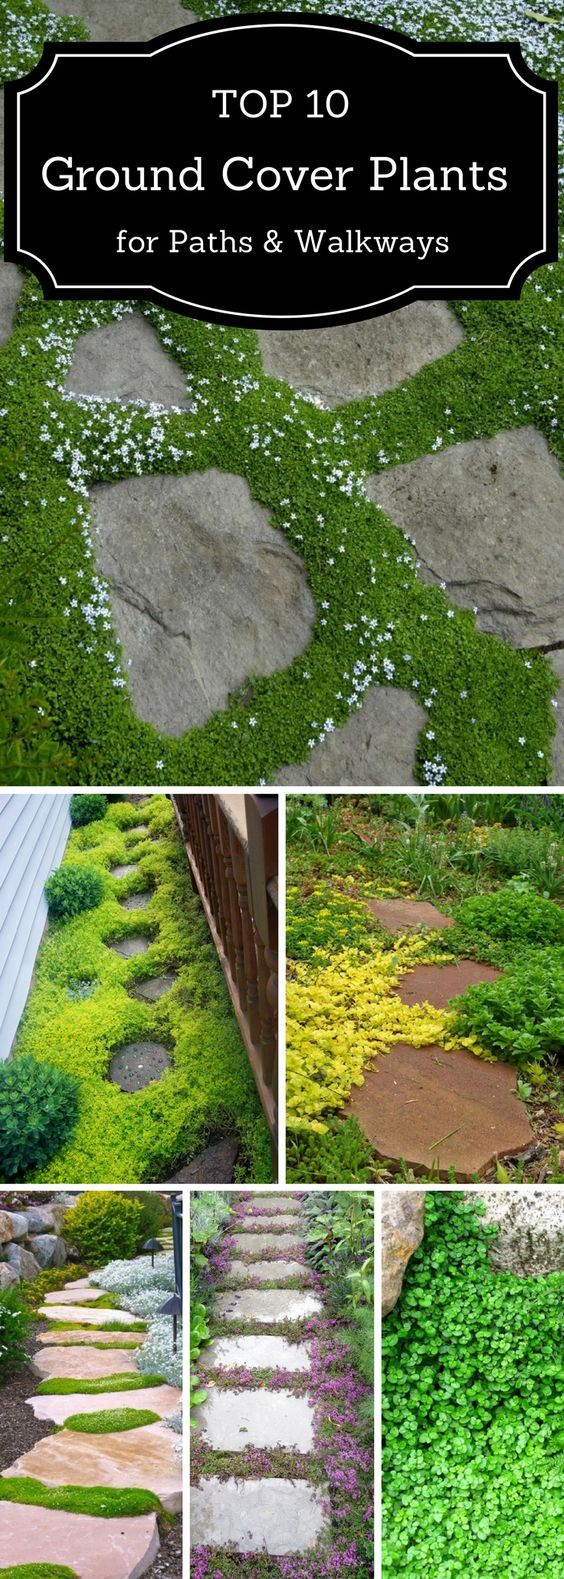 Top plants and ground cover for your paths and walkways gardens